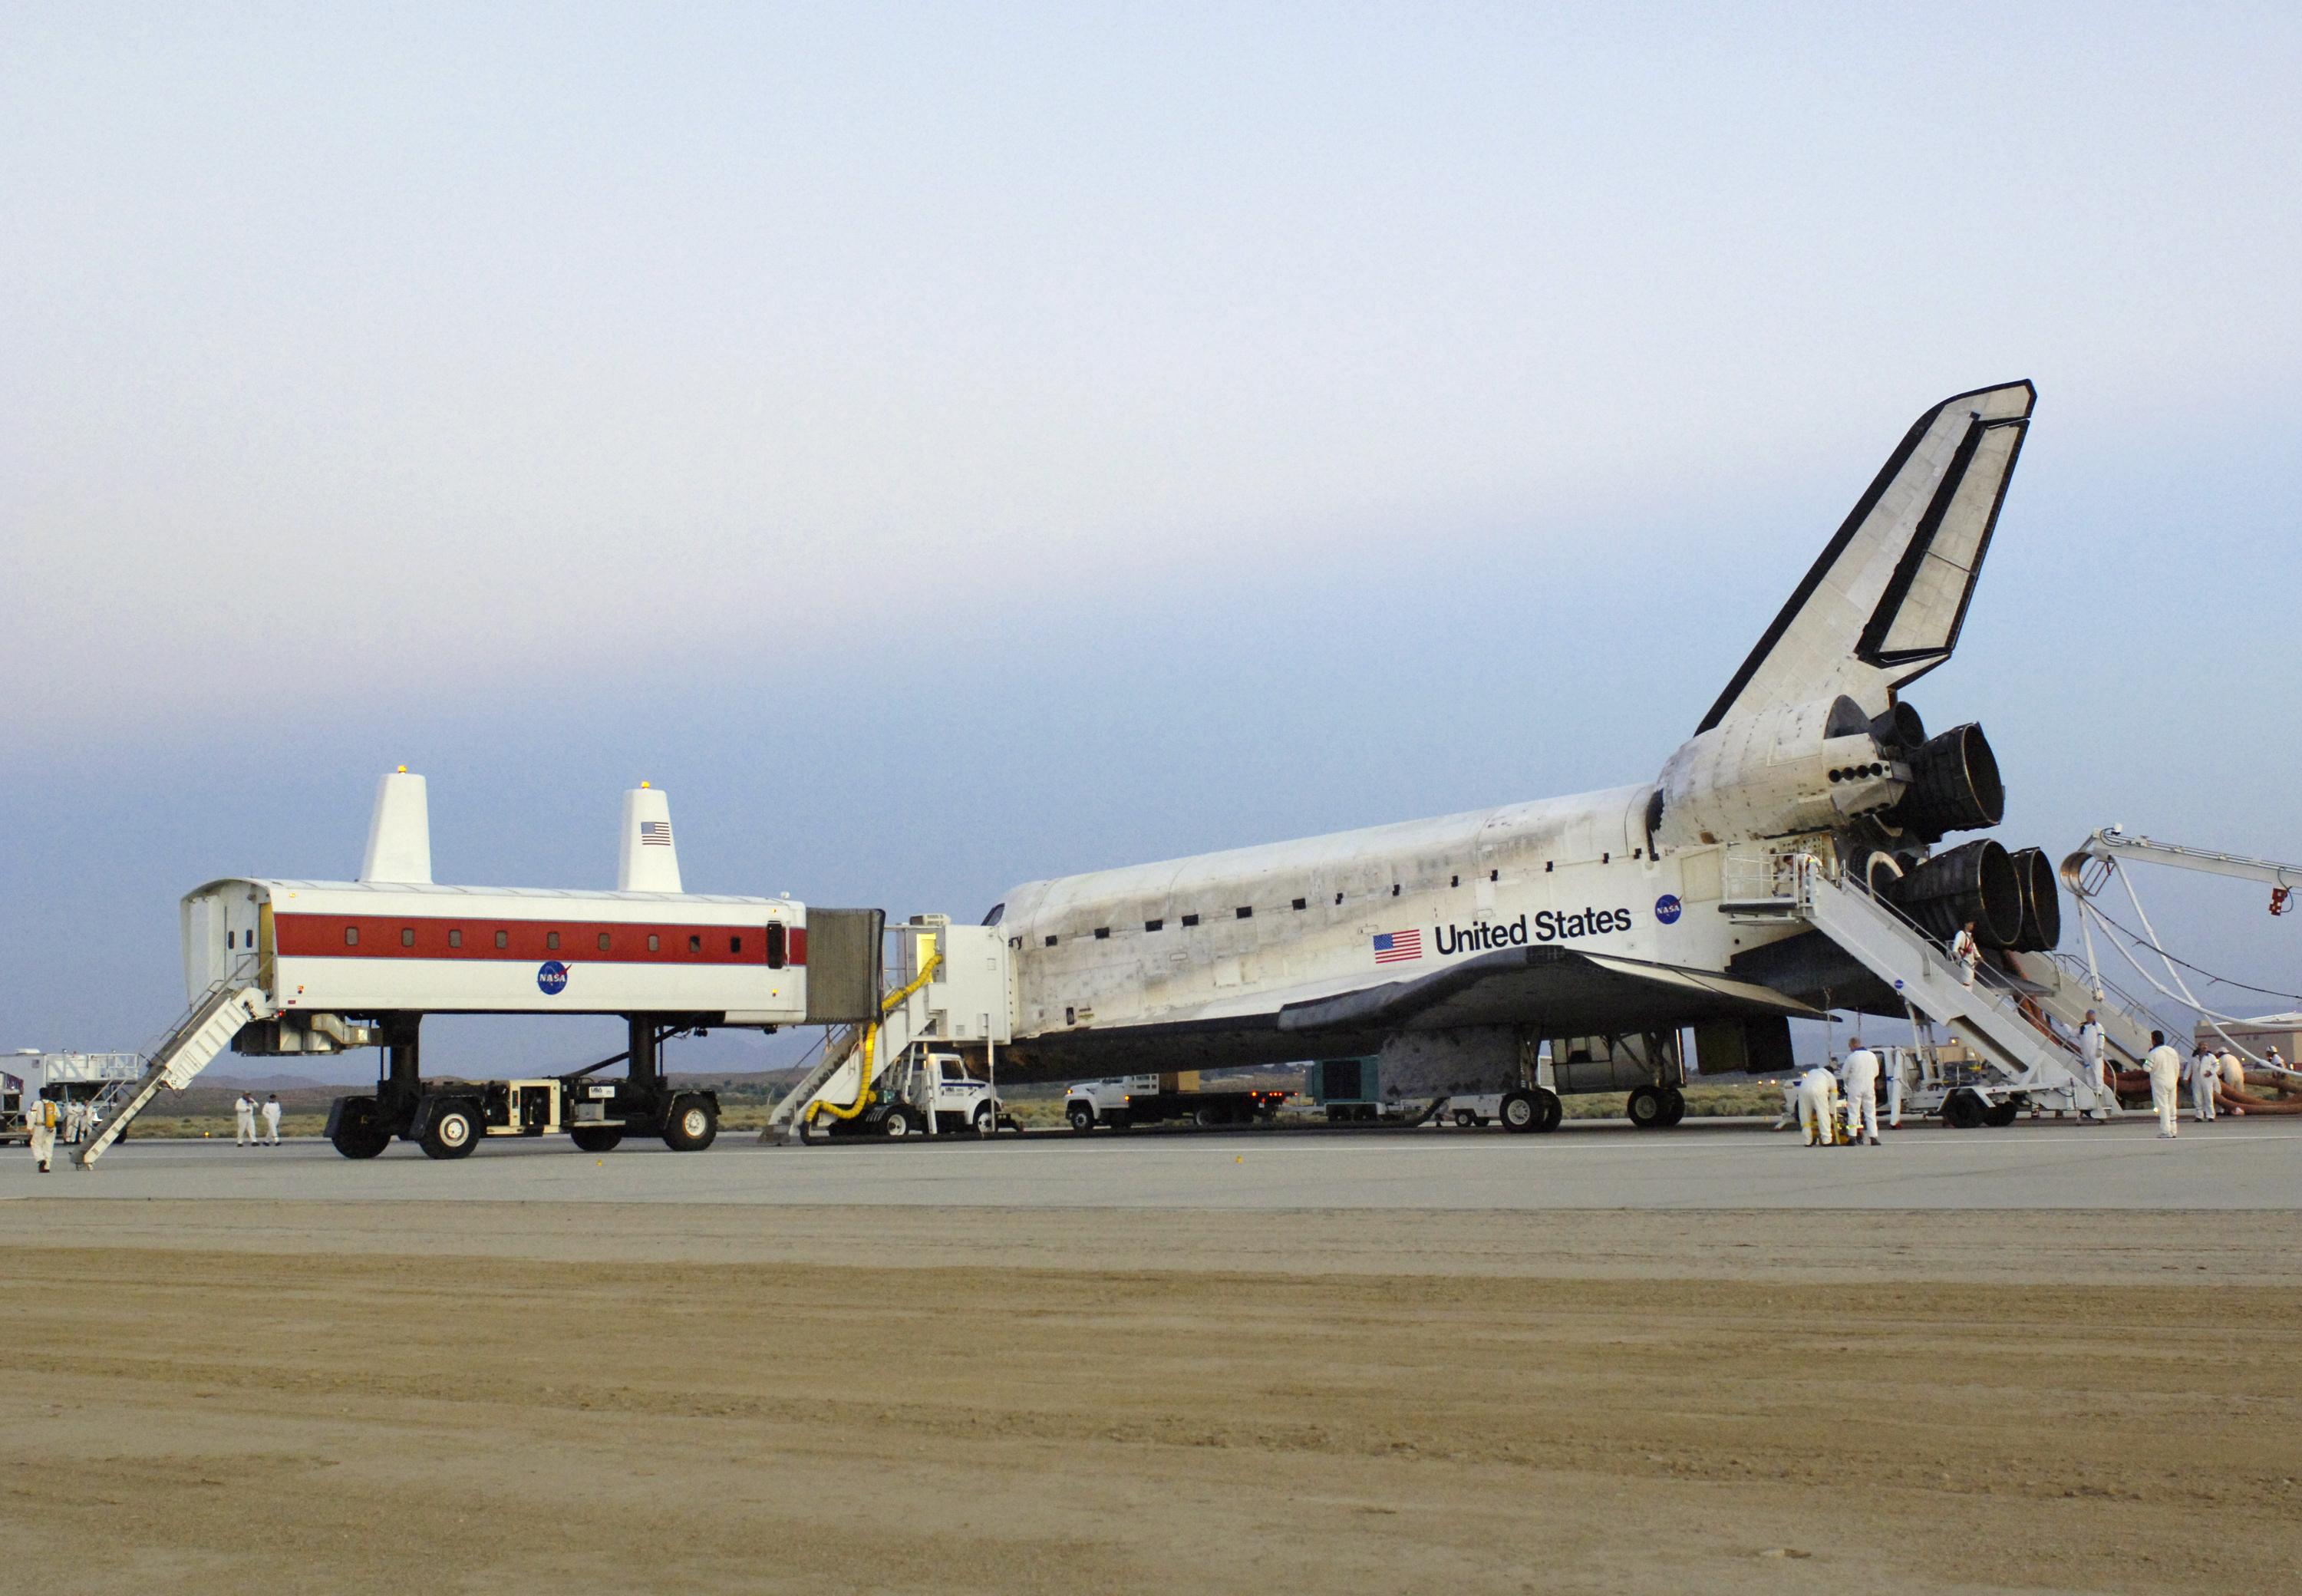 nasa crew transfer vehicle - photo #20